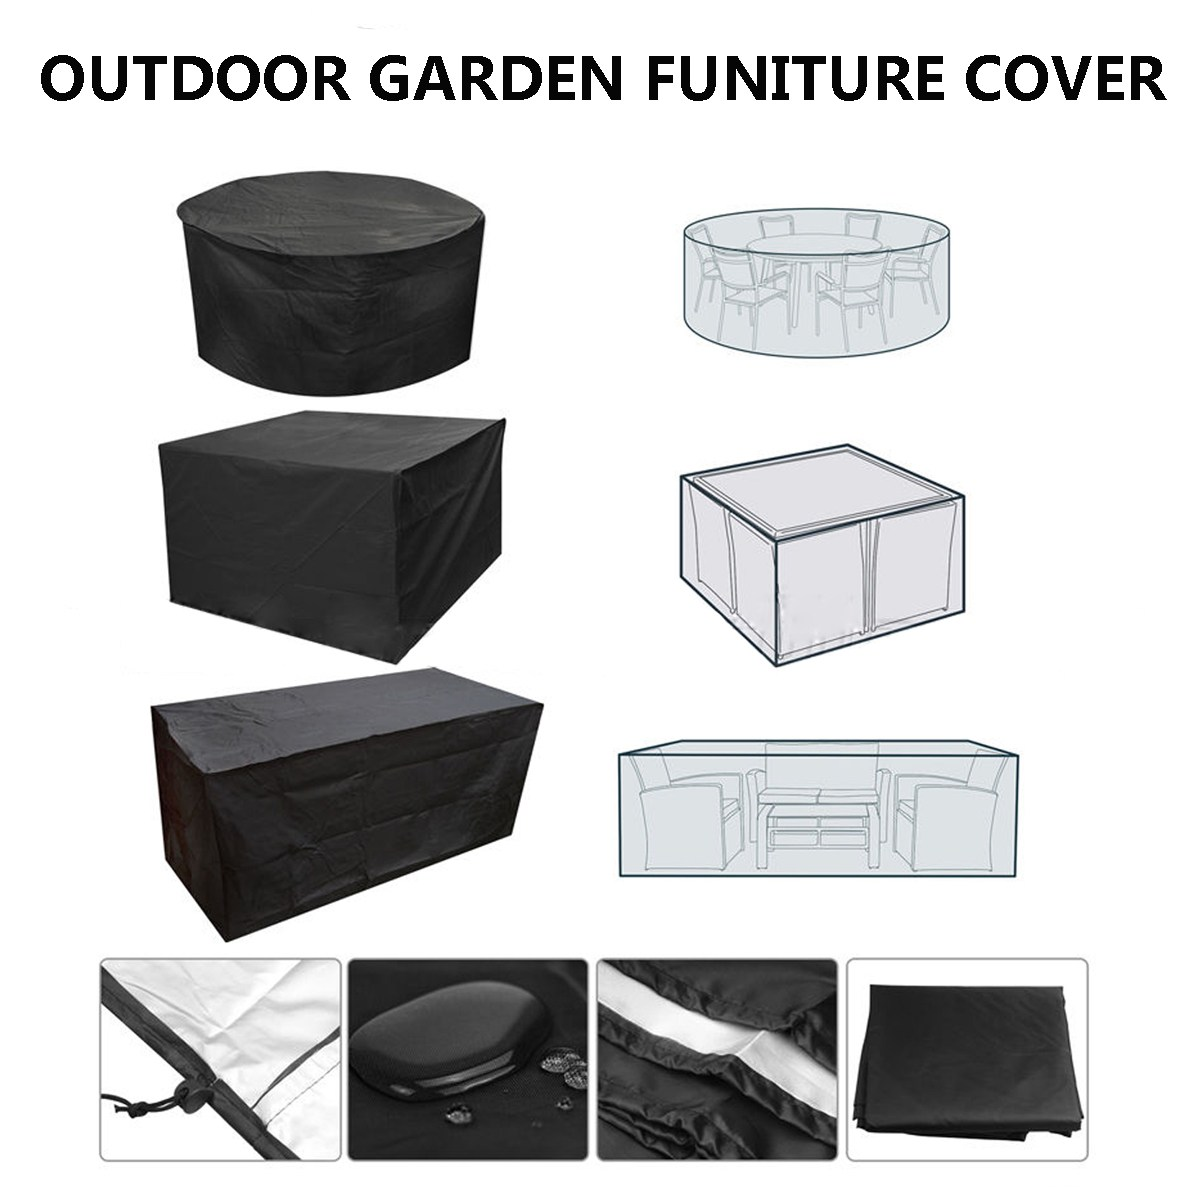 Admirable Us 17 85 49 Off Black Garden Patio Waterproof Furniture Cover Set Table Bench Cube Outdoor Tablecloth Table Runner 4 Sizes Rectangle Round In Caraccident5 Cool Chair Designs And Ideas Caraccident5Info